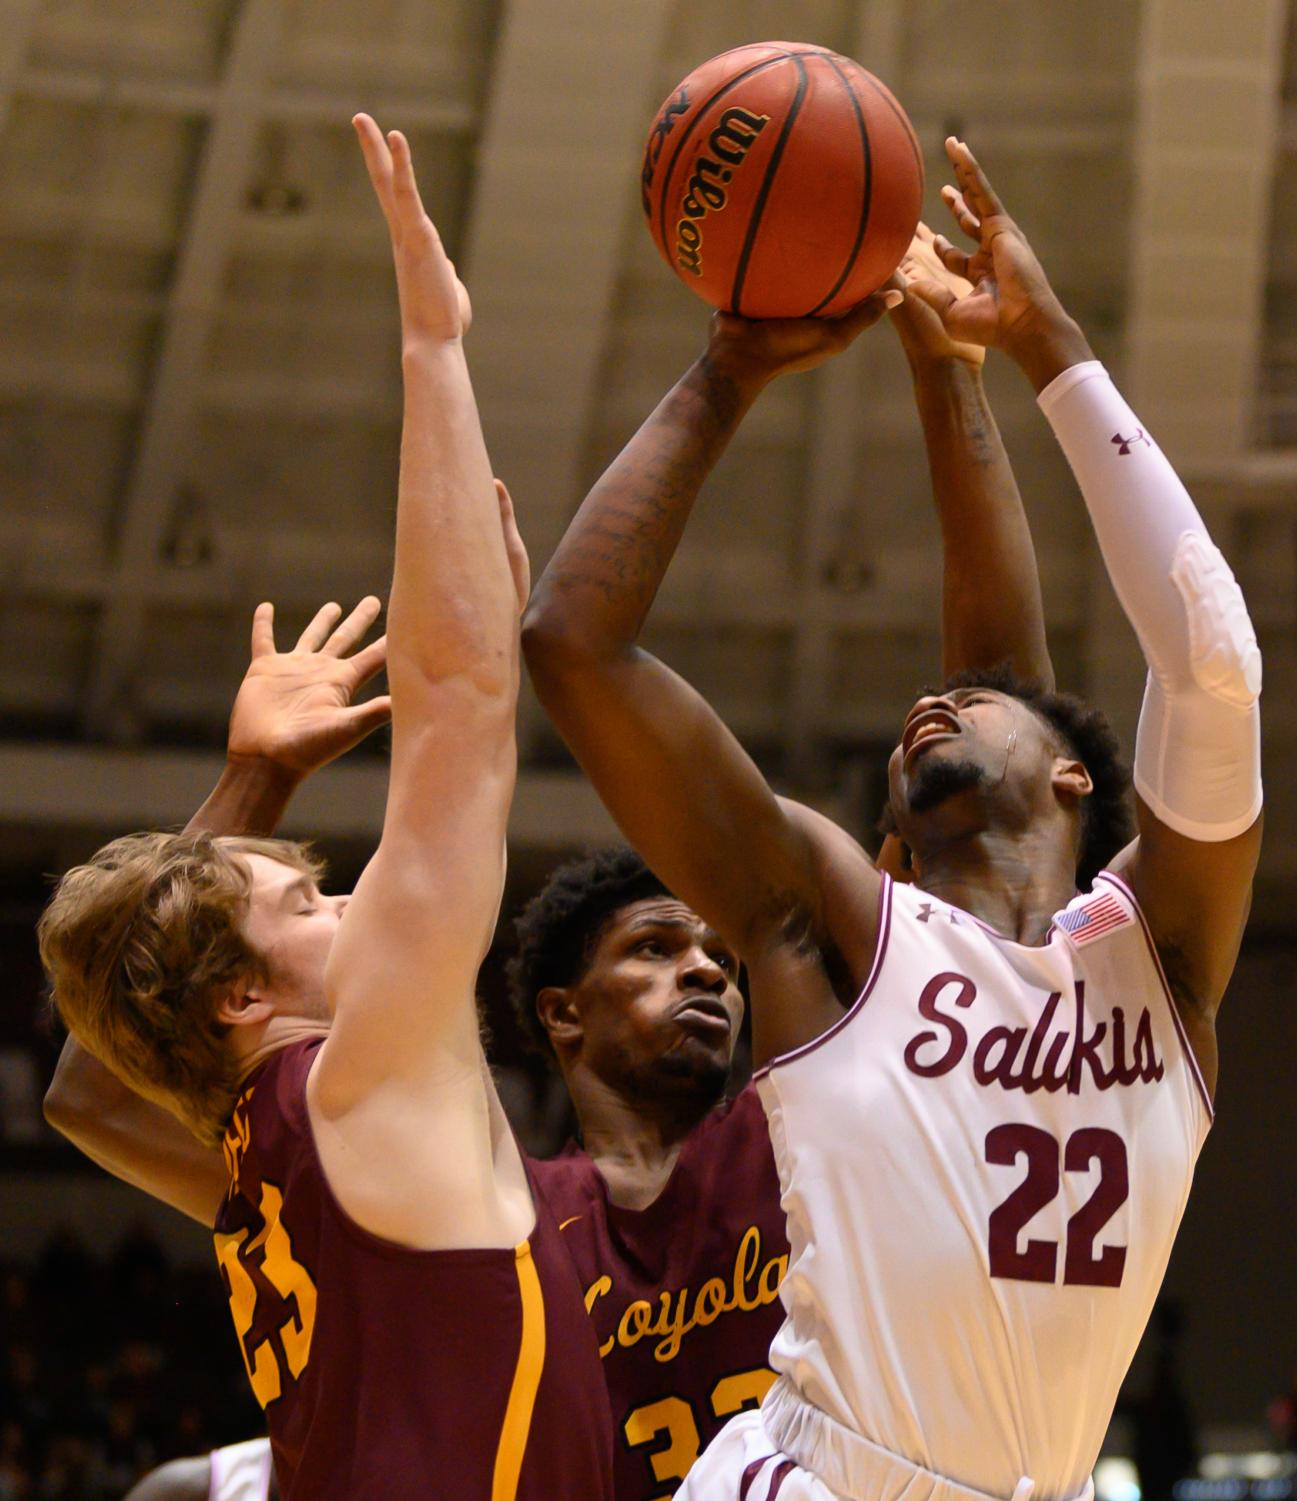 Southern+Illinois+Salukis+forward+Armon+Fletcher+goes+for+a+basket+while+under+pressure+from+Loyola+Ramblers+guard+Cooper+Kaifes+and+Ramblers+forward+Franklin+Agunanne+on+Sunday%2C+Feb.+24%2C+2019%2C+during+a+matchup+between+the+Southern+Illinois+Salukis+and+the+Loyola+Ramblers+at+SIU+Arena.